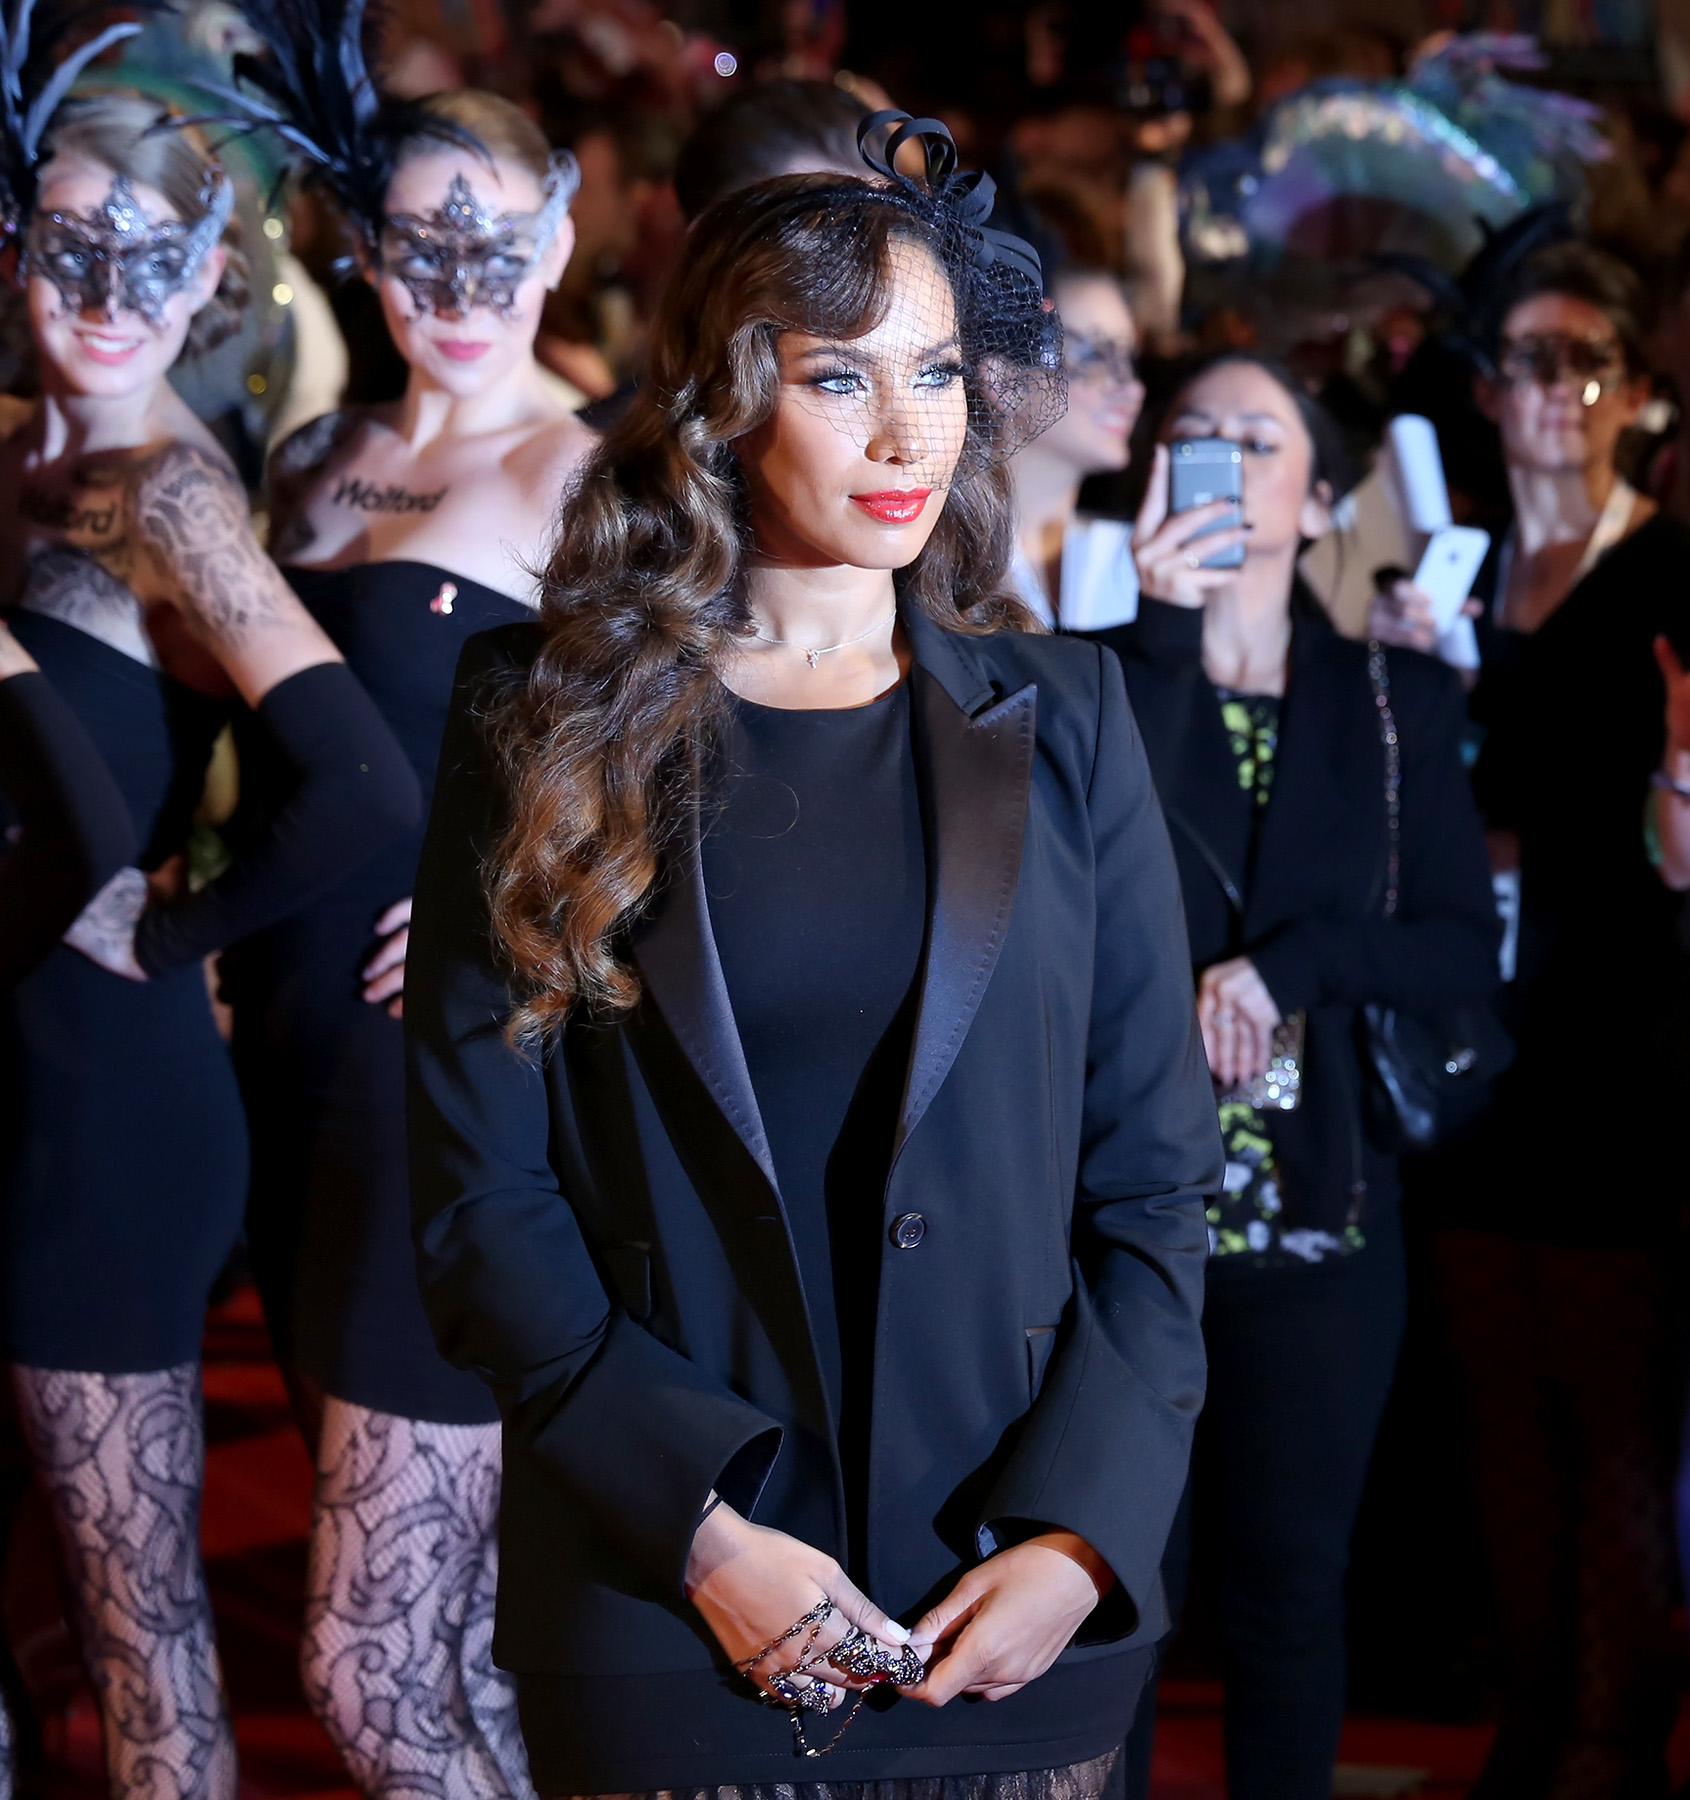 File:Life Ball 2014 Red Carpet 106 Leona Lewis.jpg